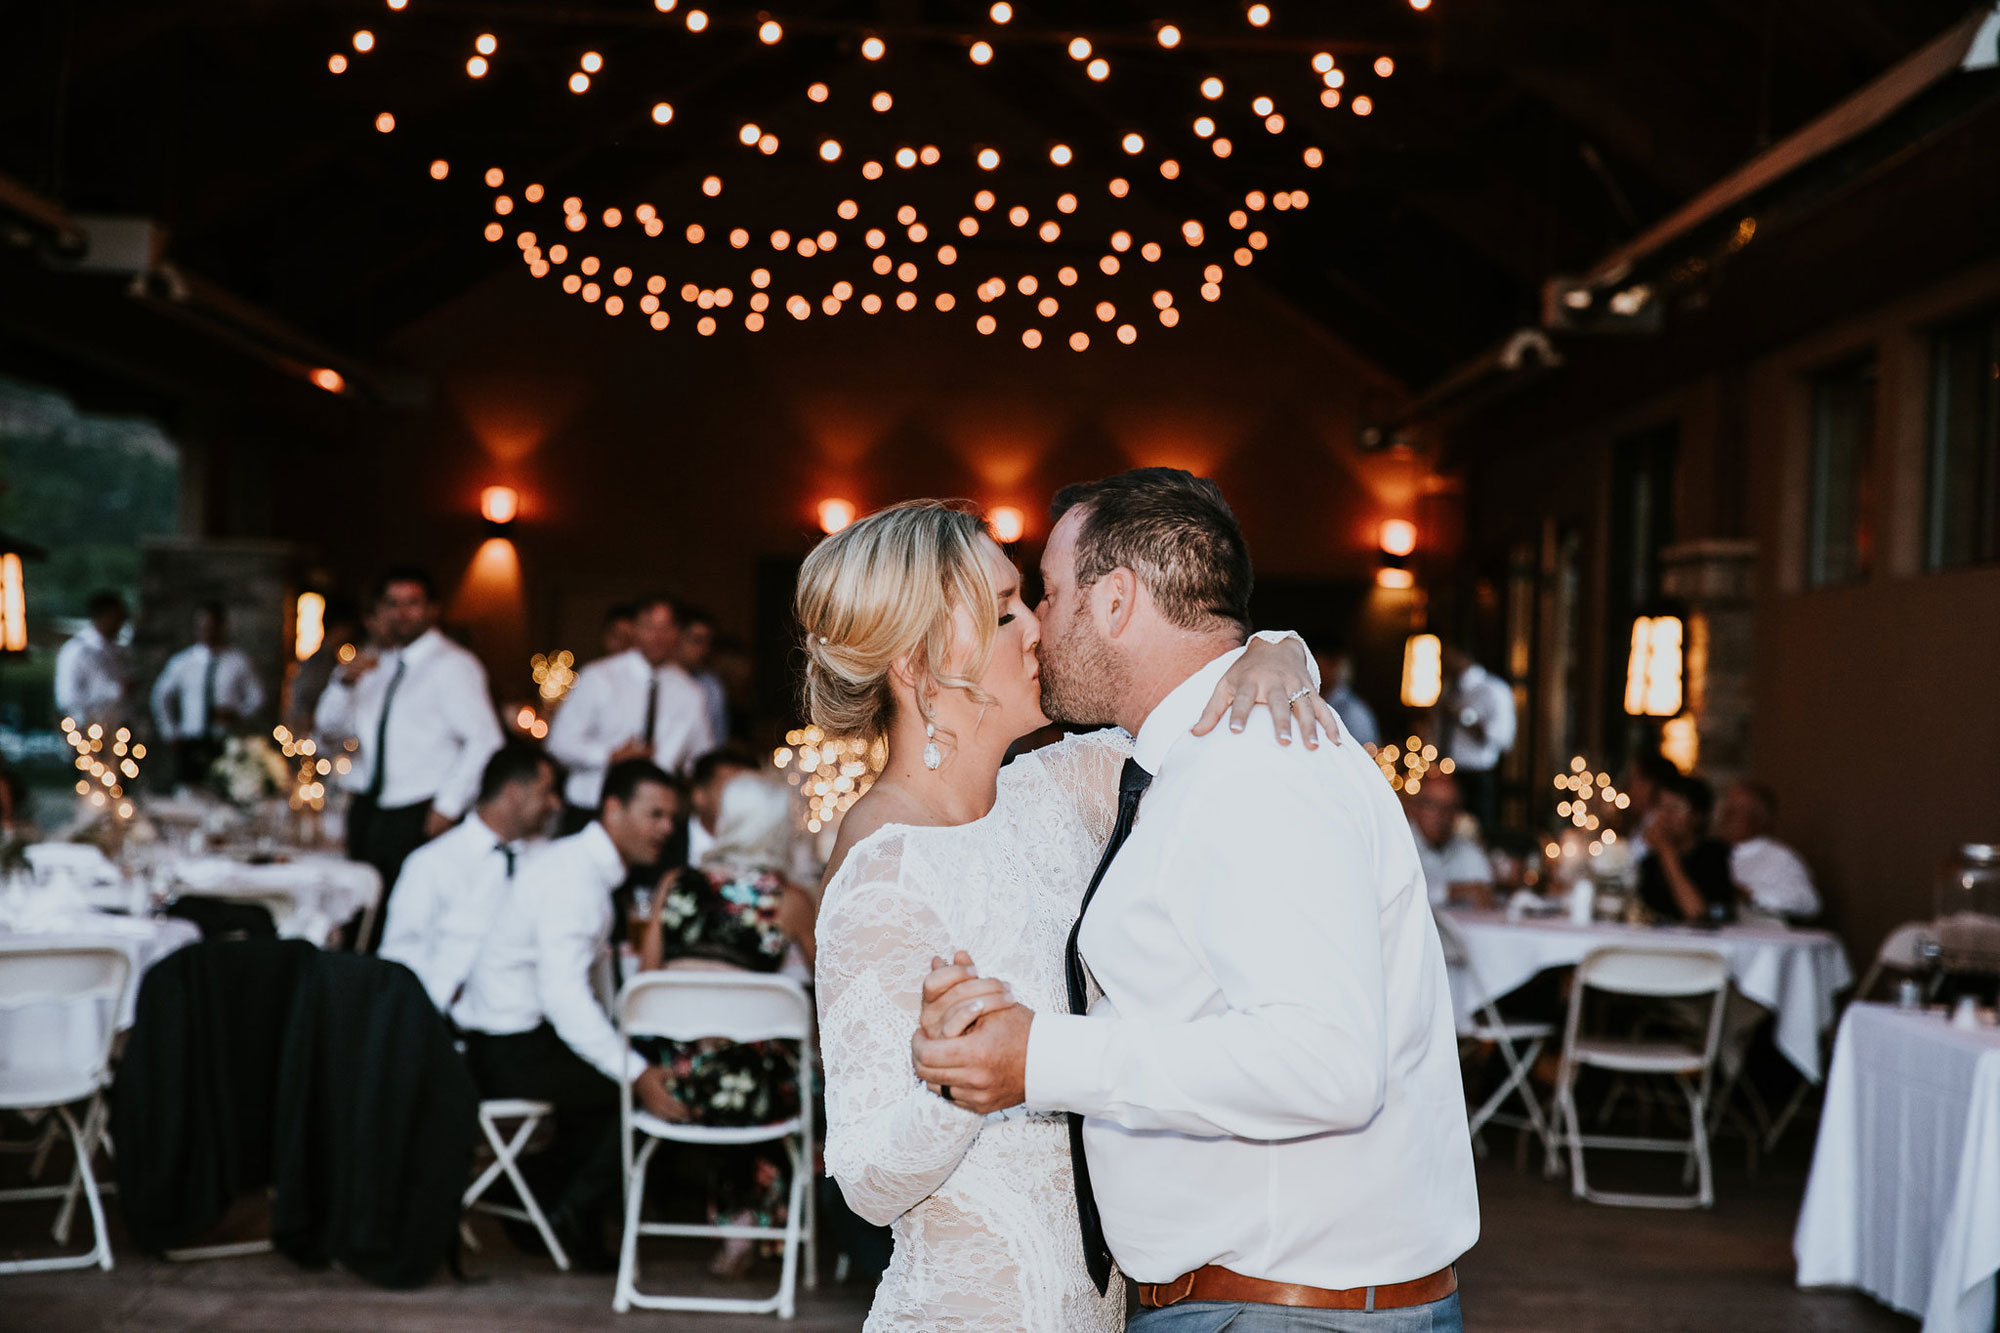 First Dance | A Simply Elegant Irish Wedding at Dalton Ranch, Durango Colorado